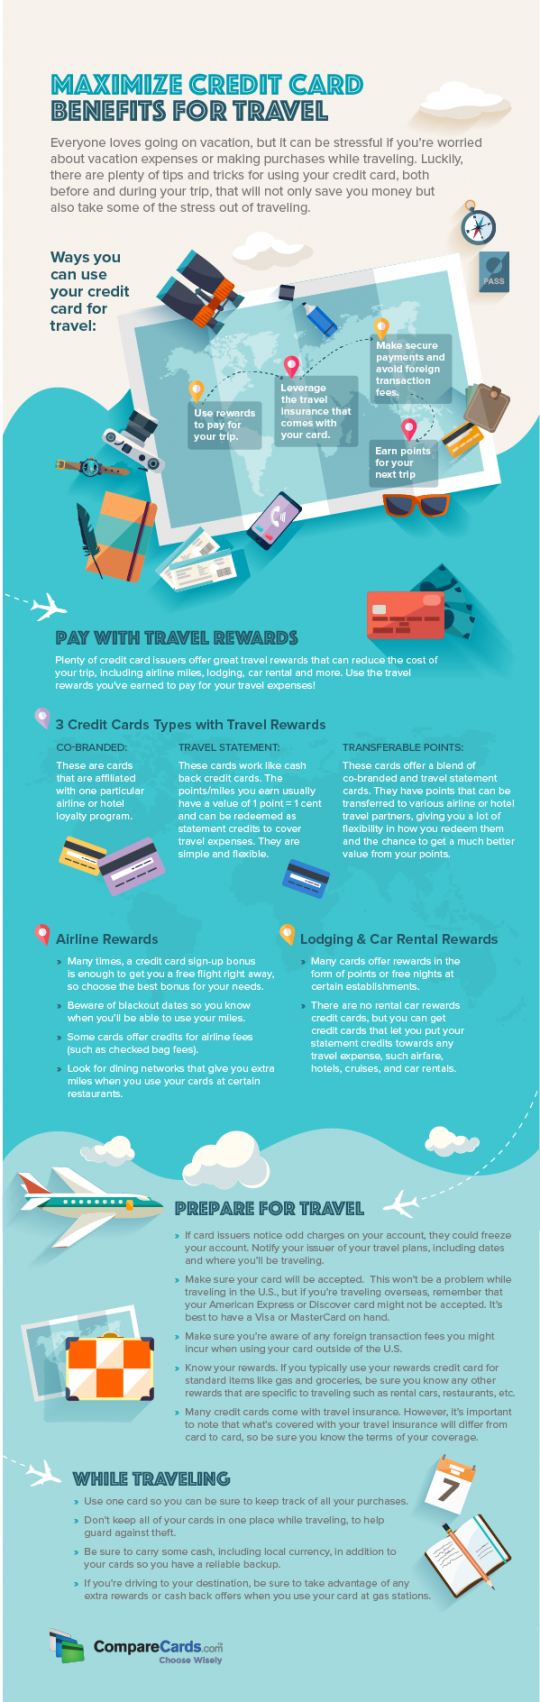 Maximize Credit Card Benefits for Travel